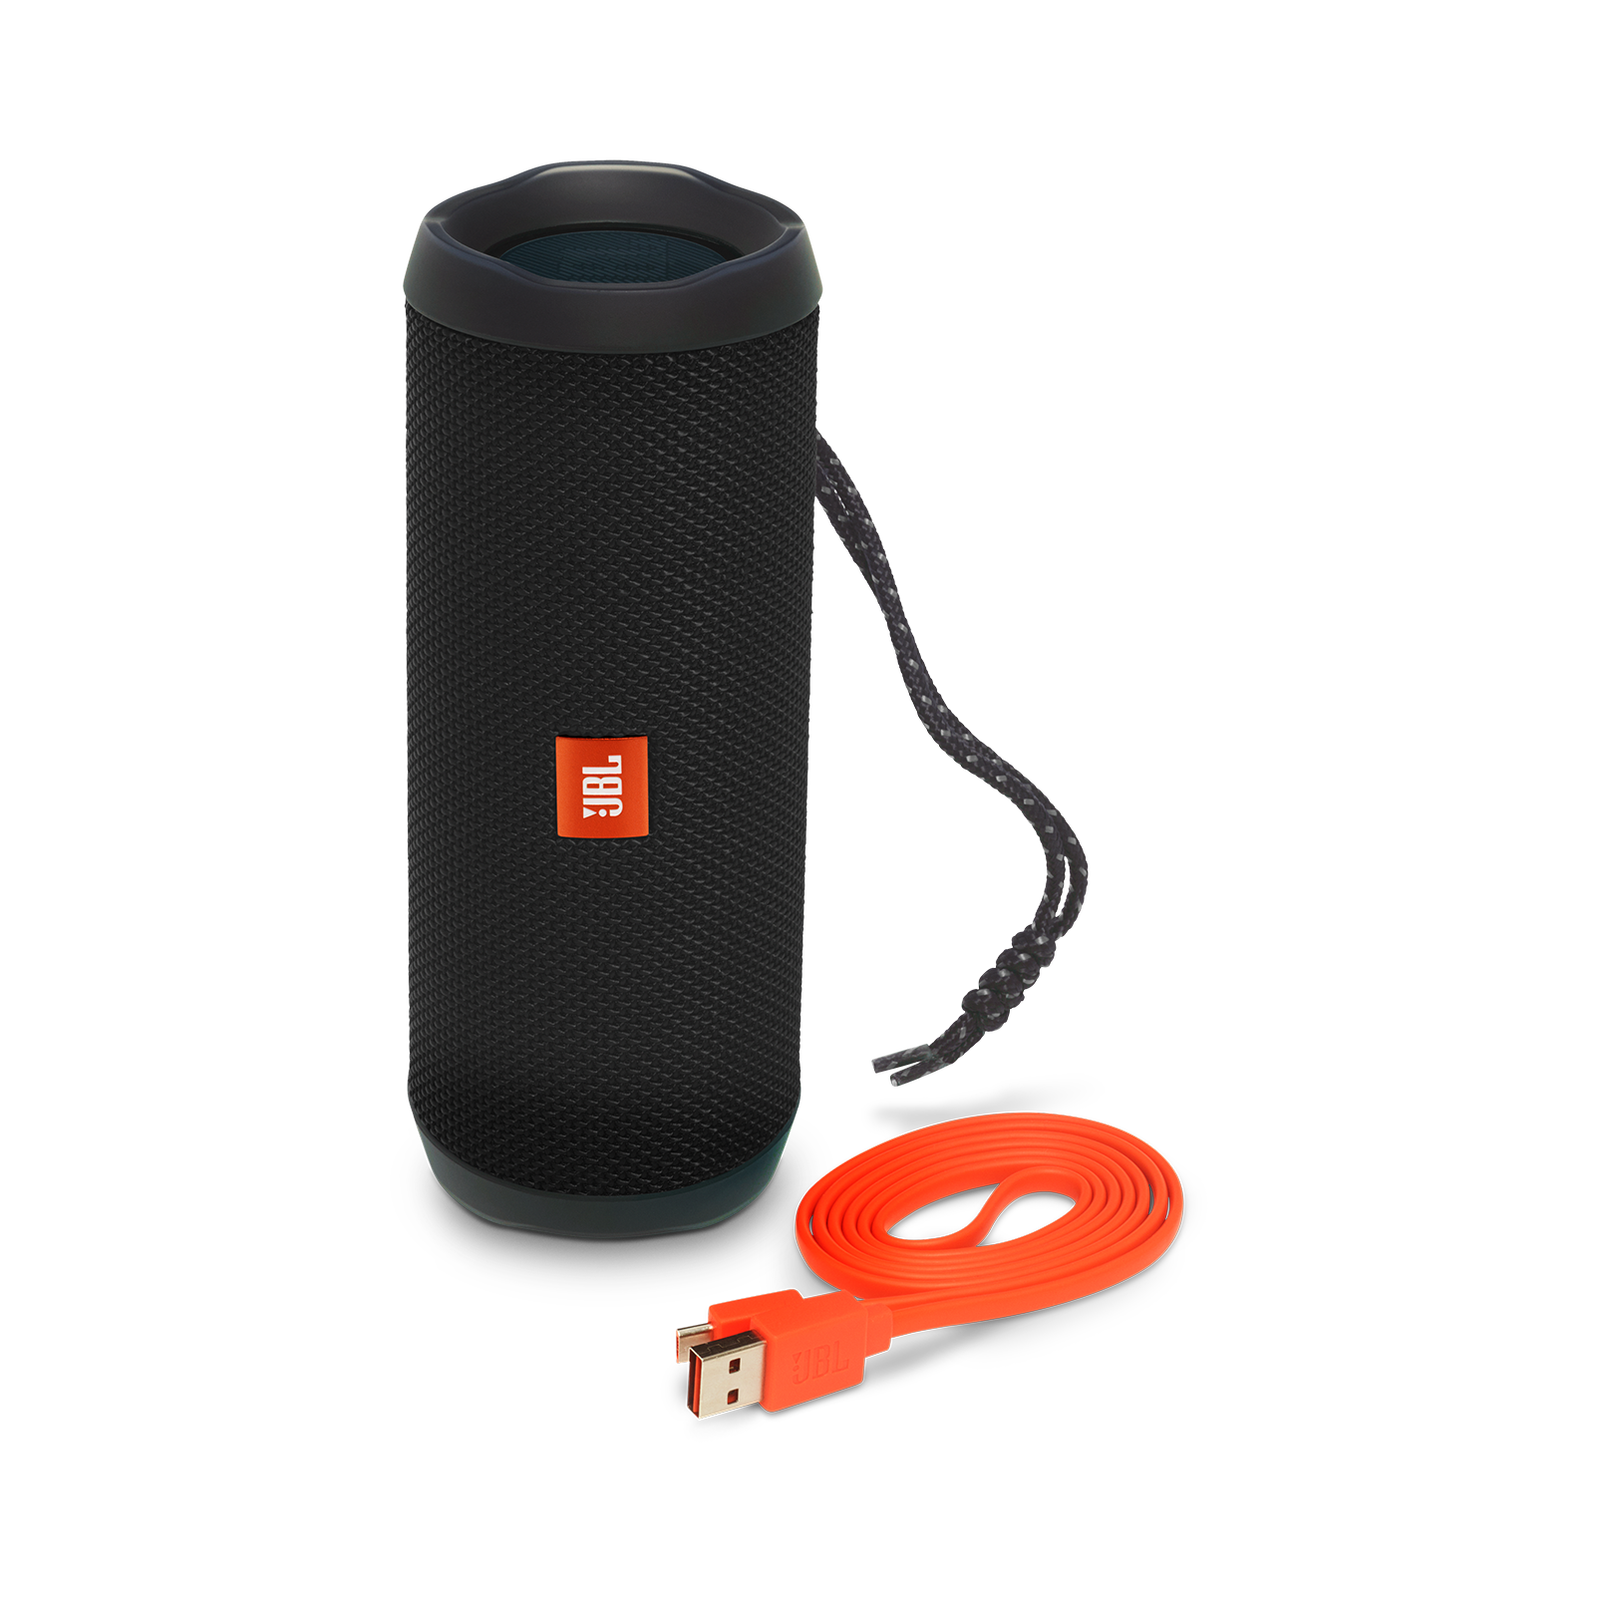 JBL Flip 4 Waterproof Portable Bluetooth Speaker - Black *Authorized Dealer* 3